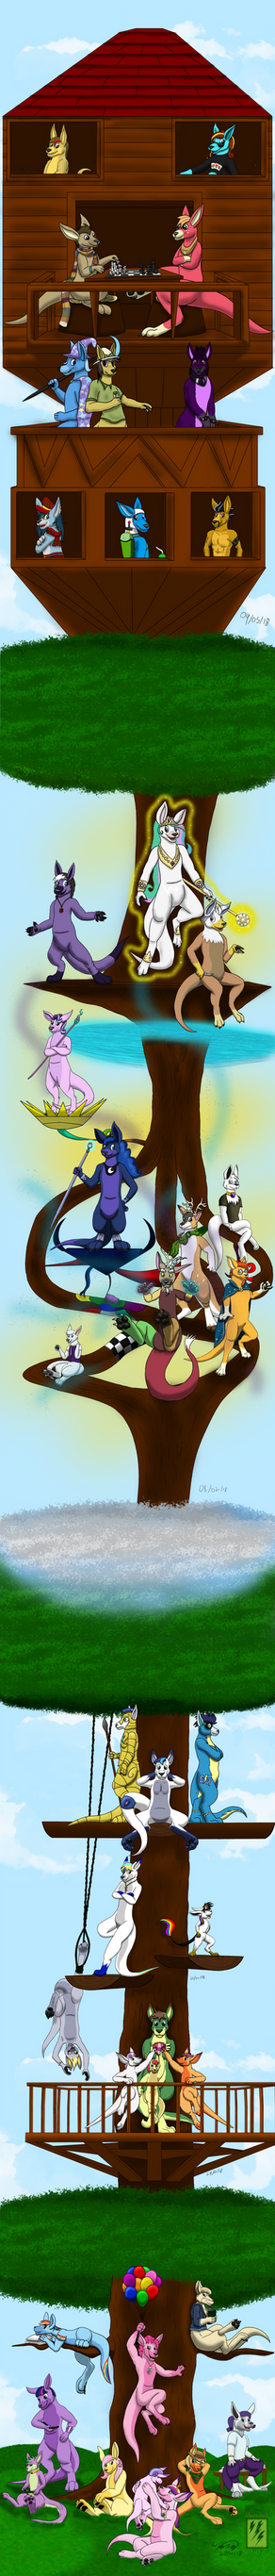 The Roo Tree by Electuroo